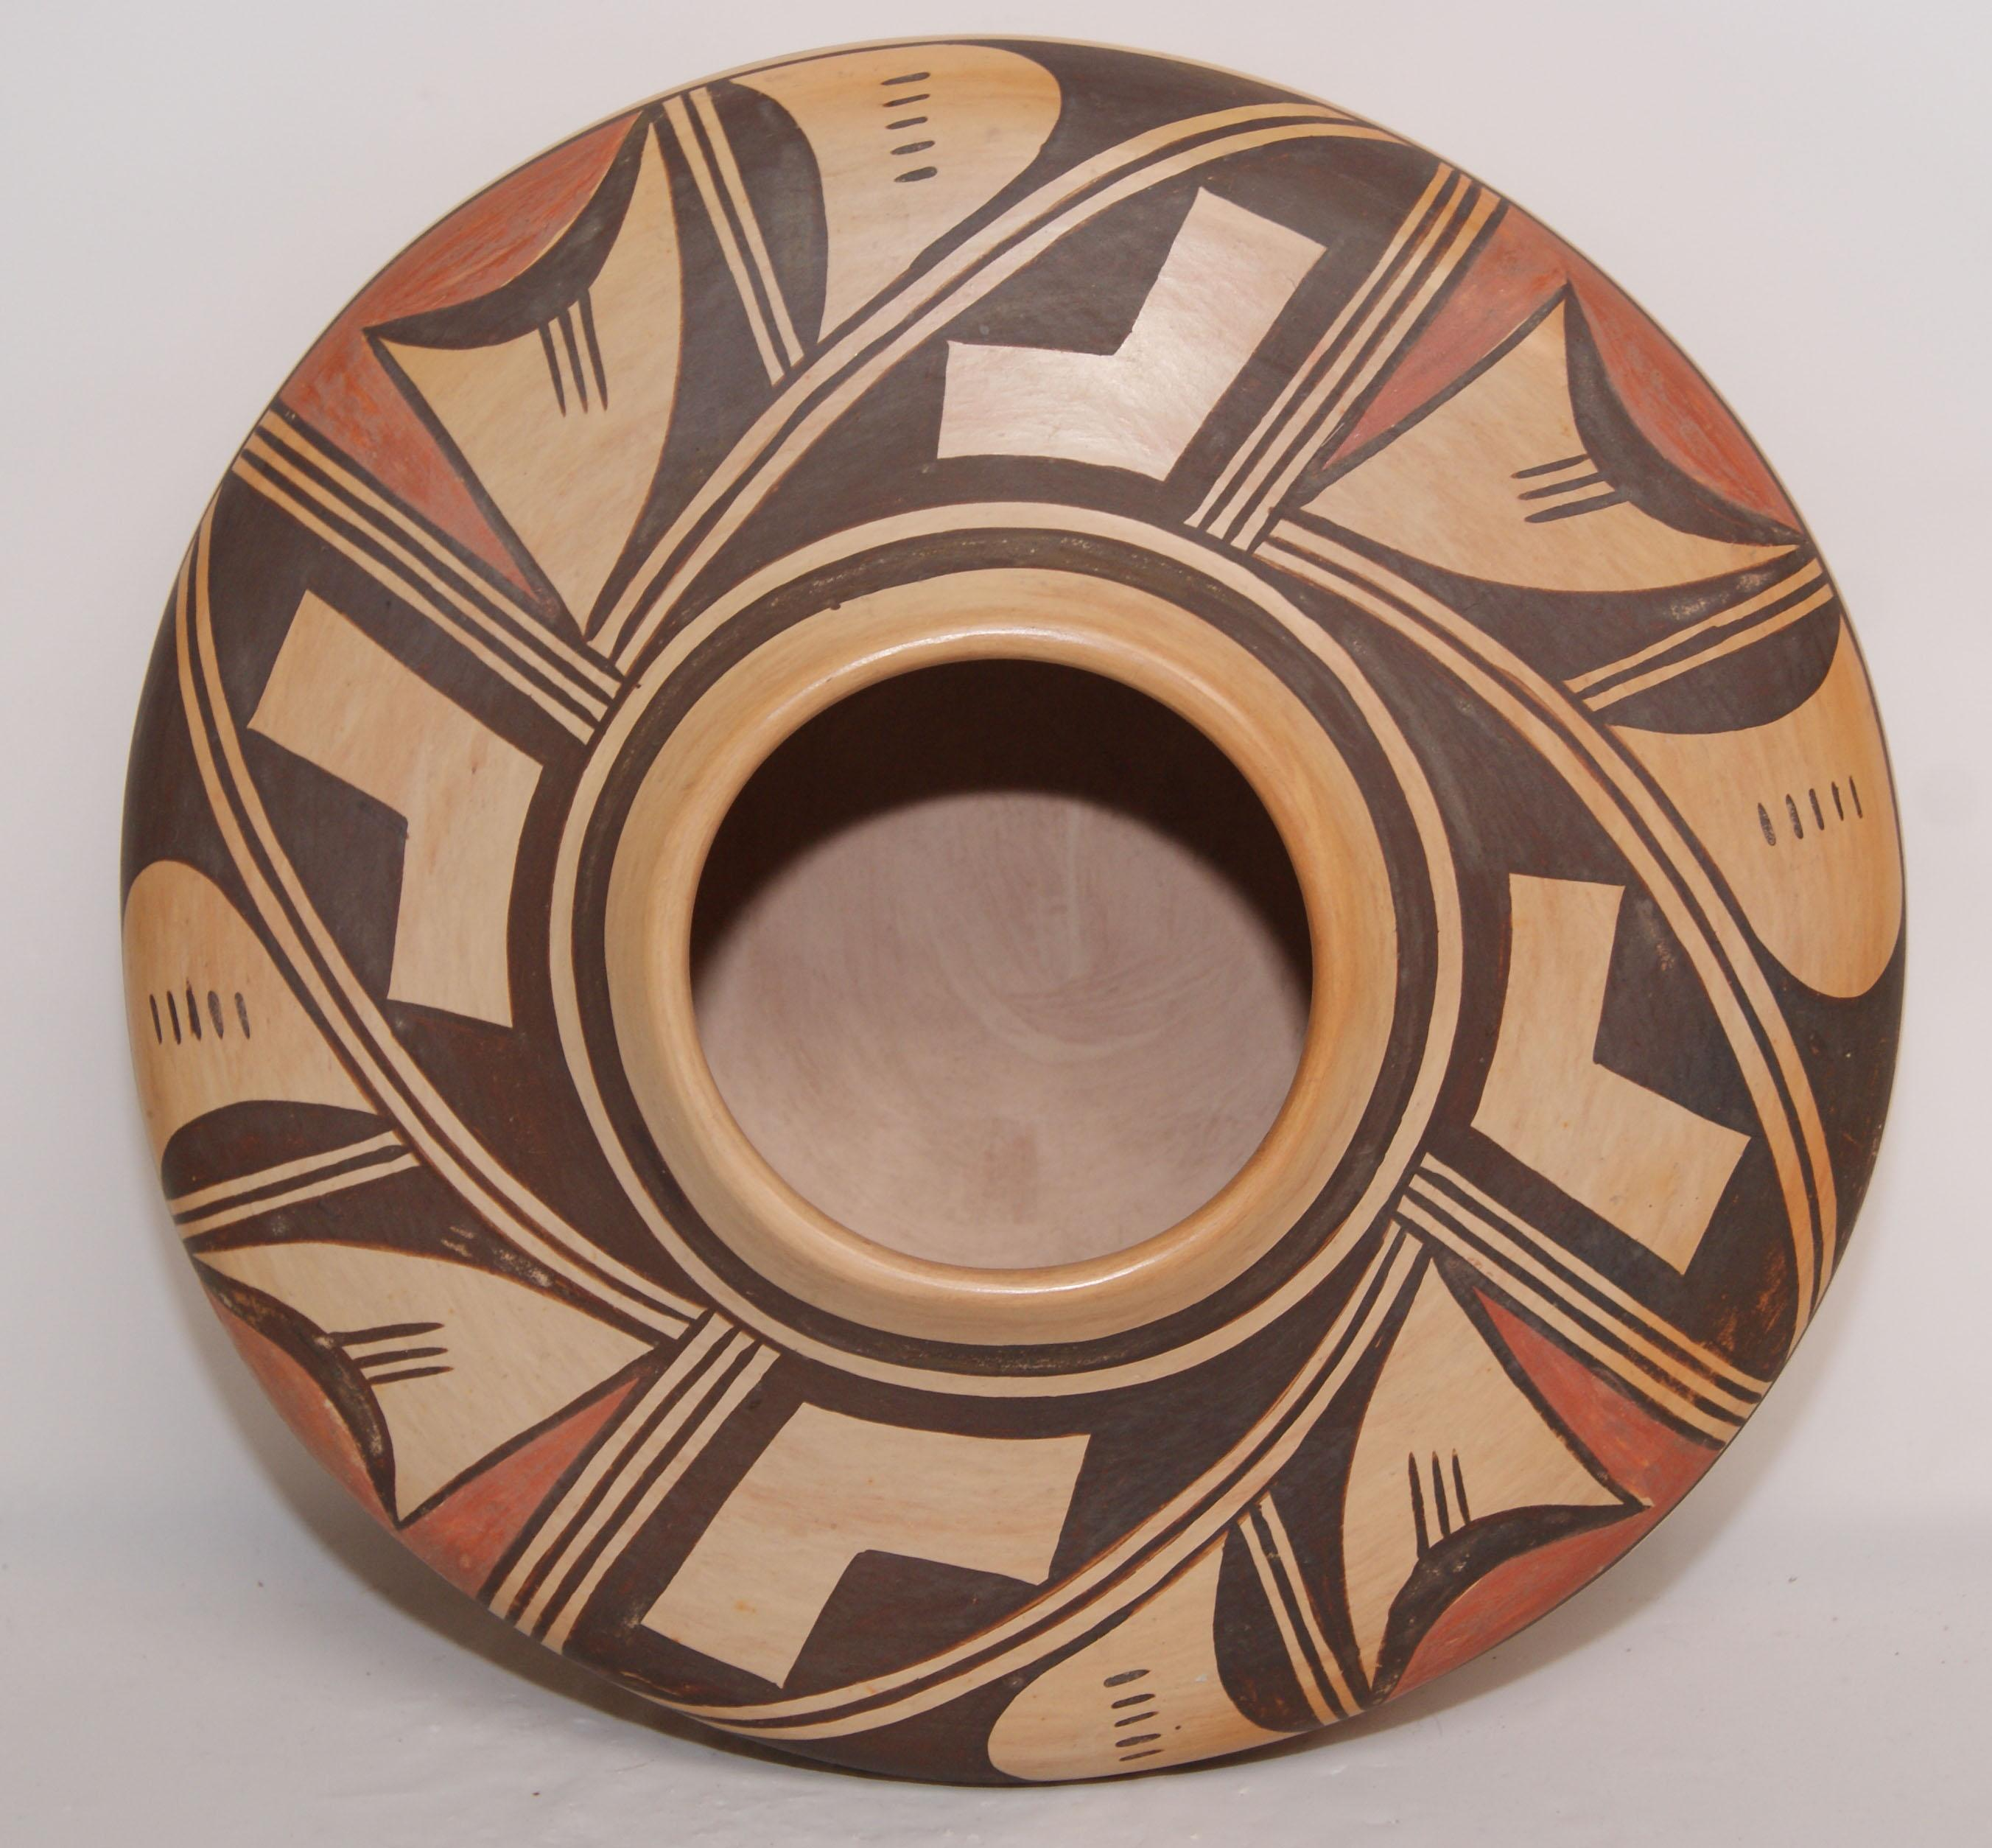 Hopi Pottery Designs Hopi pottery seed jarHopi Pottery Designs